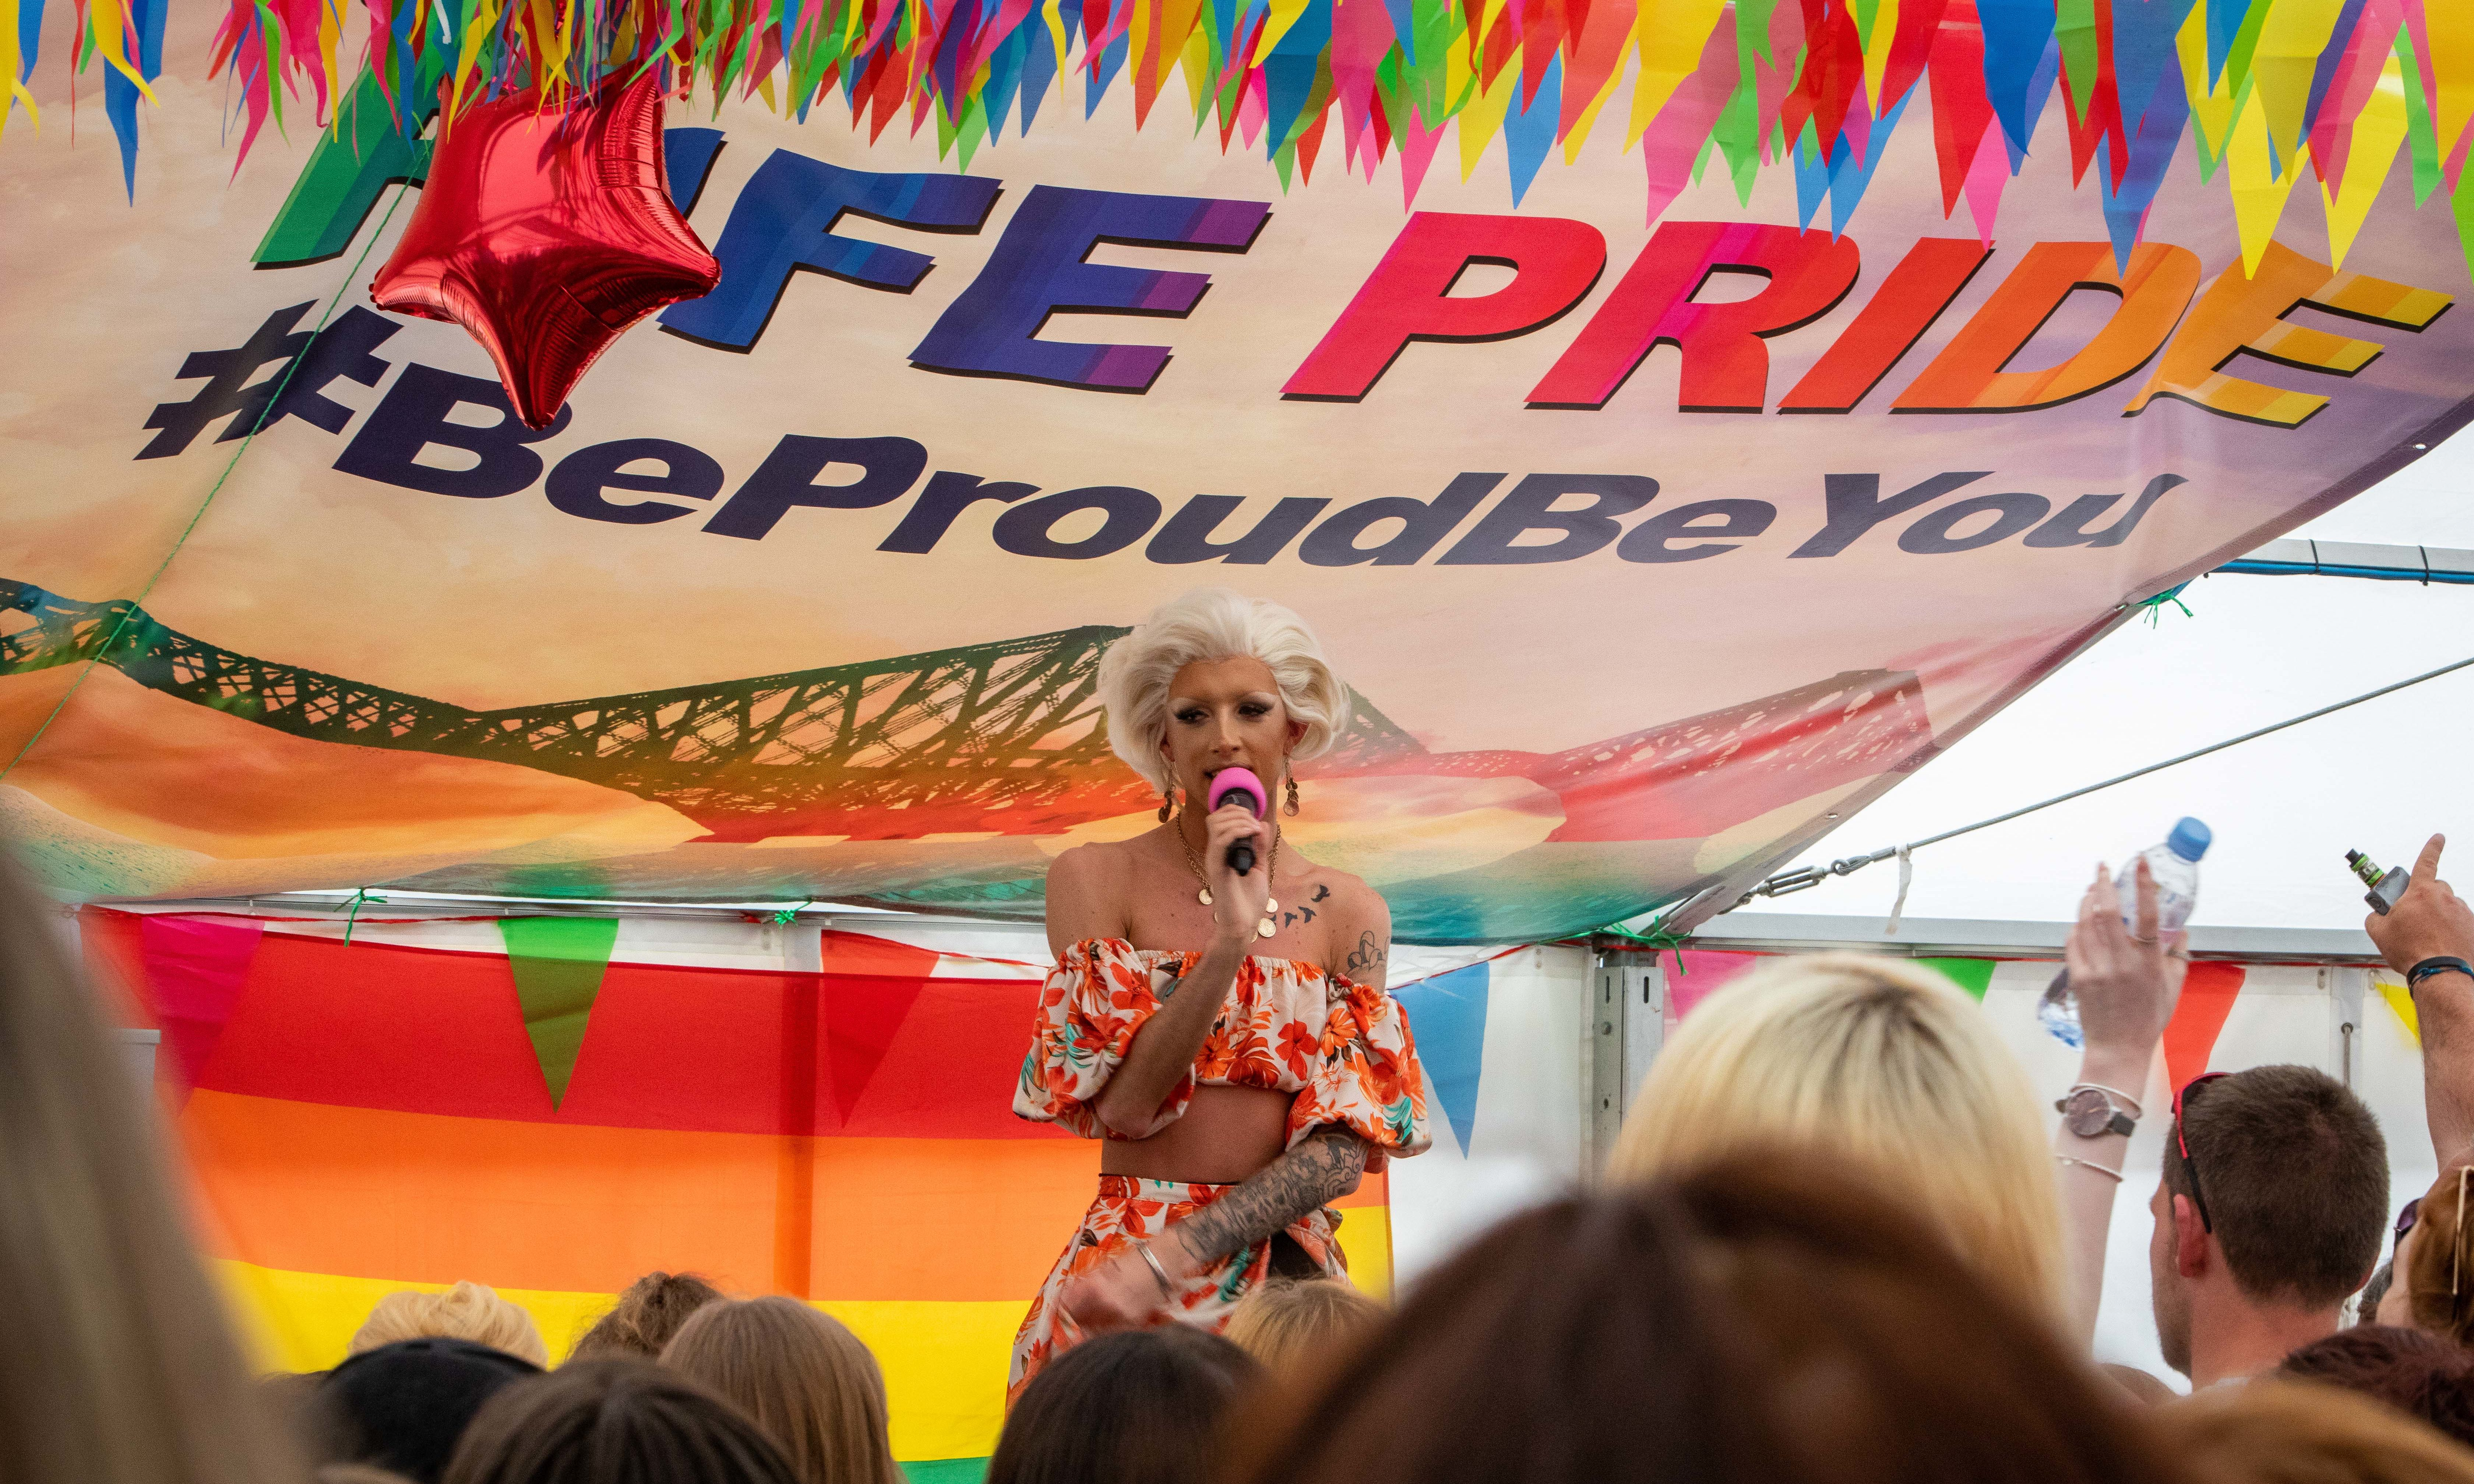 Fife Pride celebrates diversity and equality